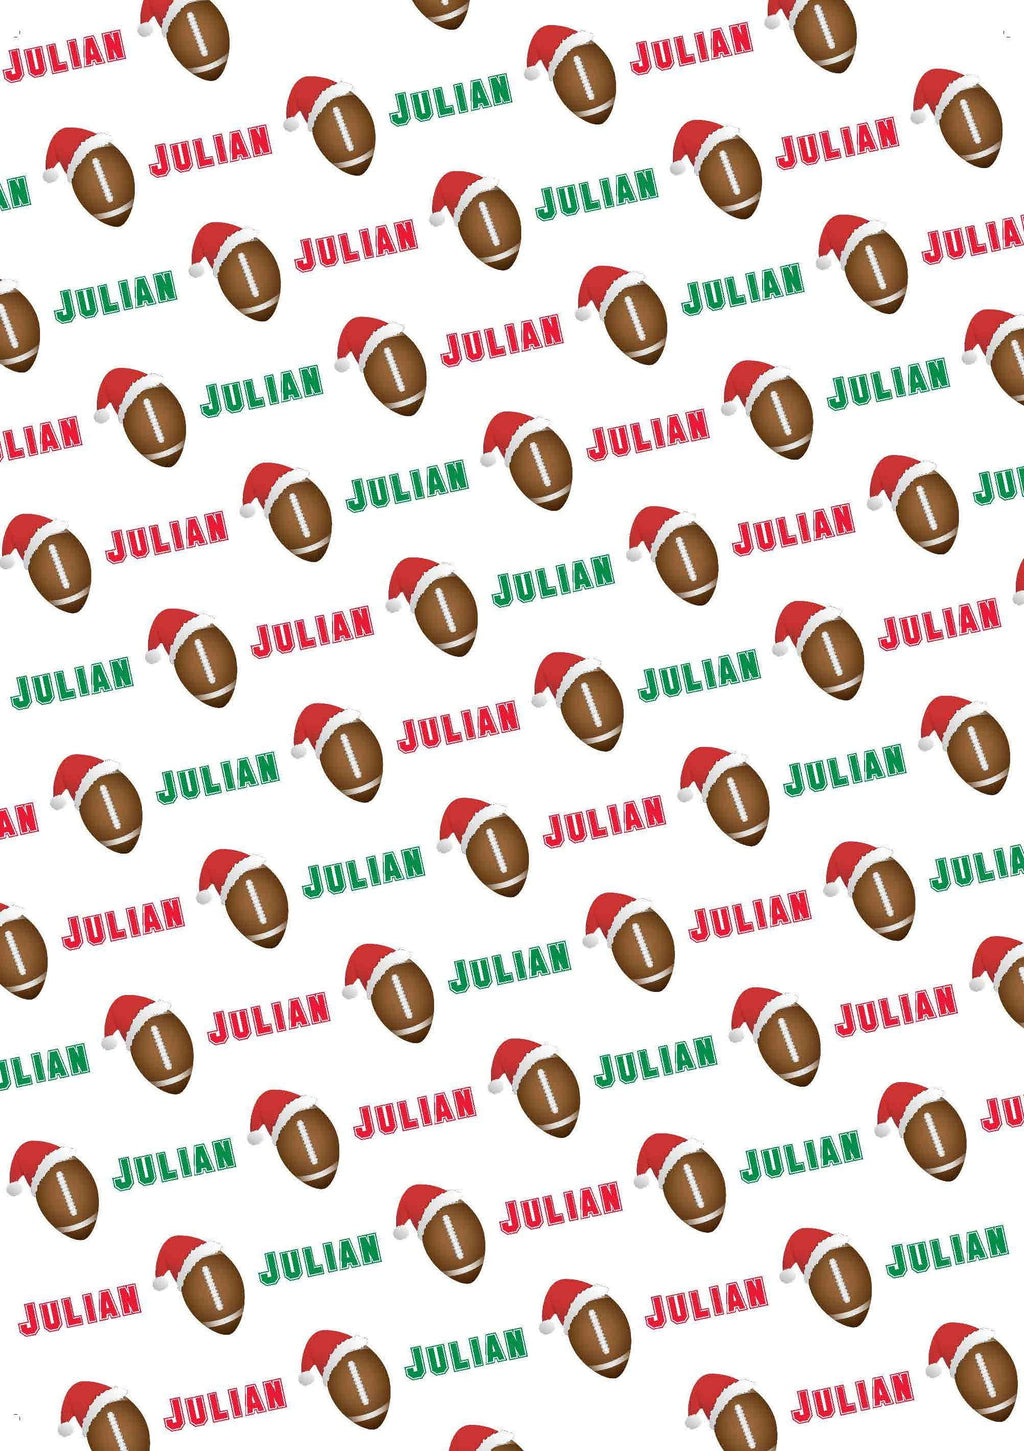 Football Personalized Christmas Gift Wrap - Potter's Printing